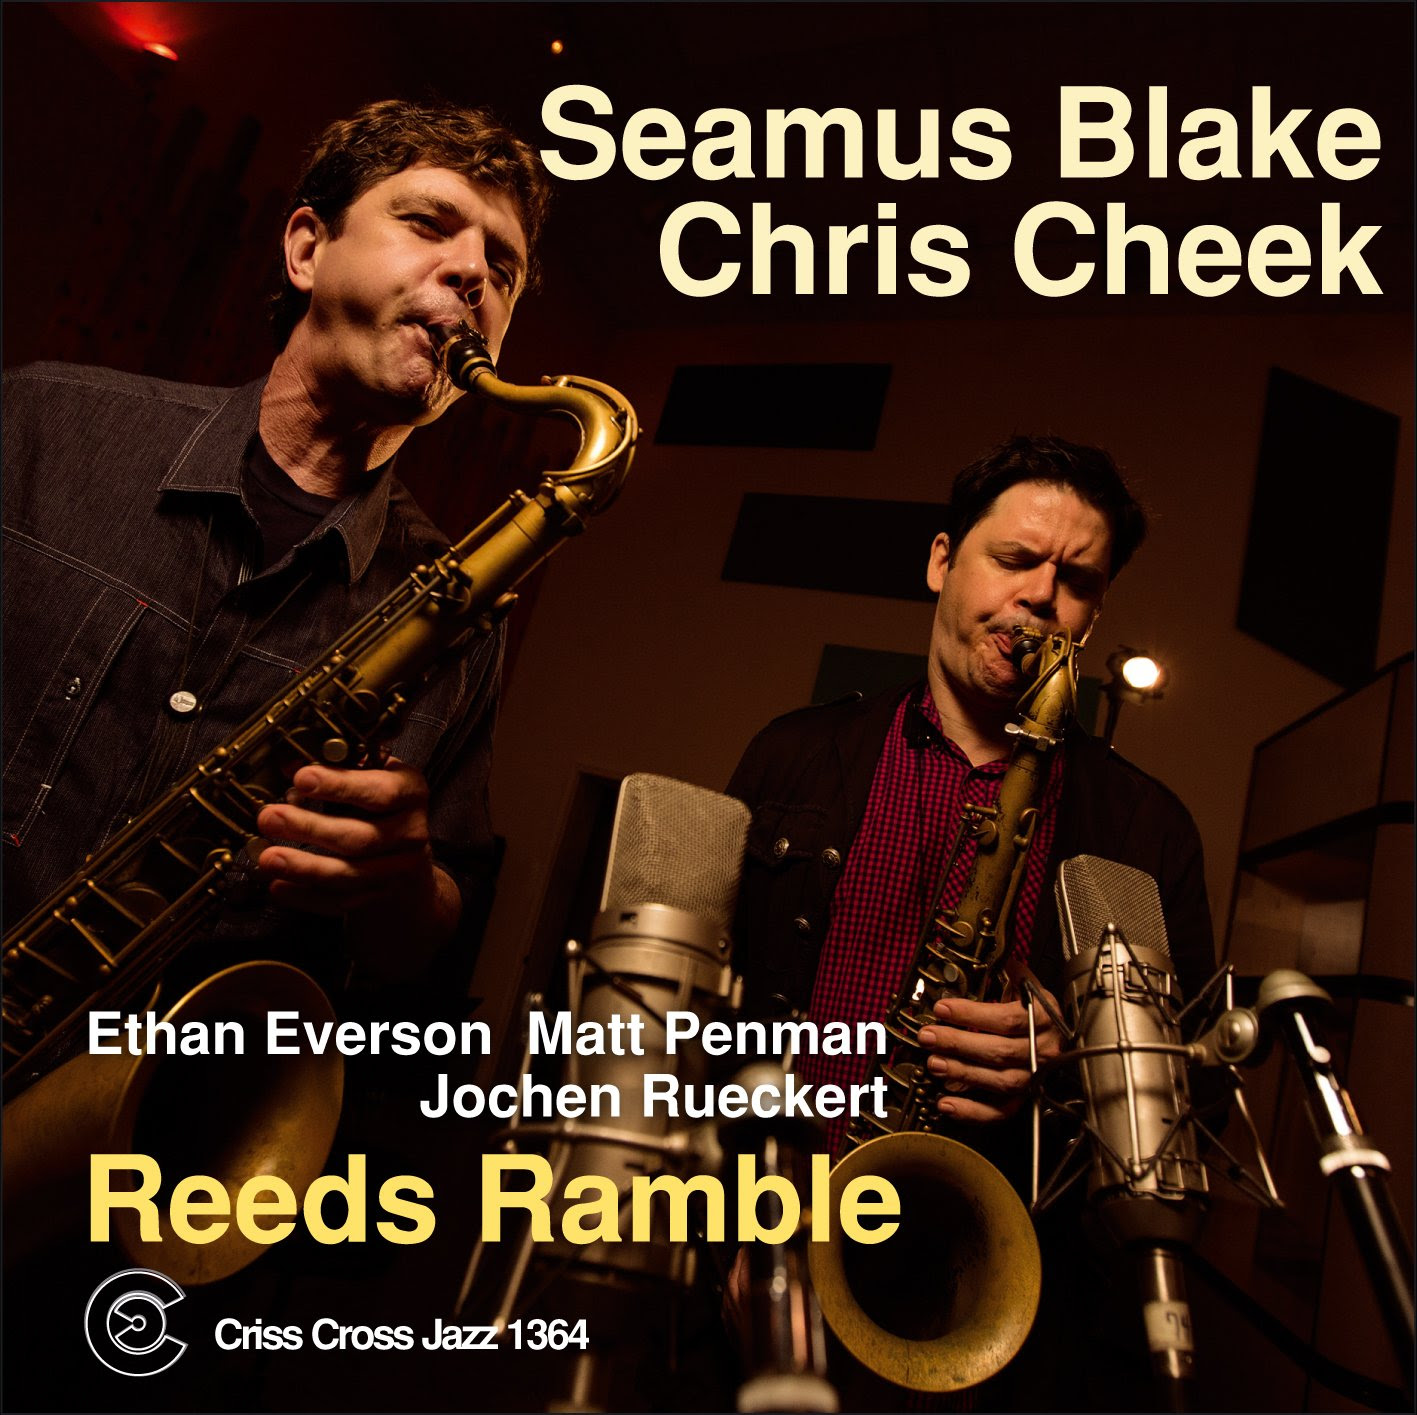 Seamus Blake / Chris Cheek - Reeds Ramble   cover